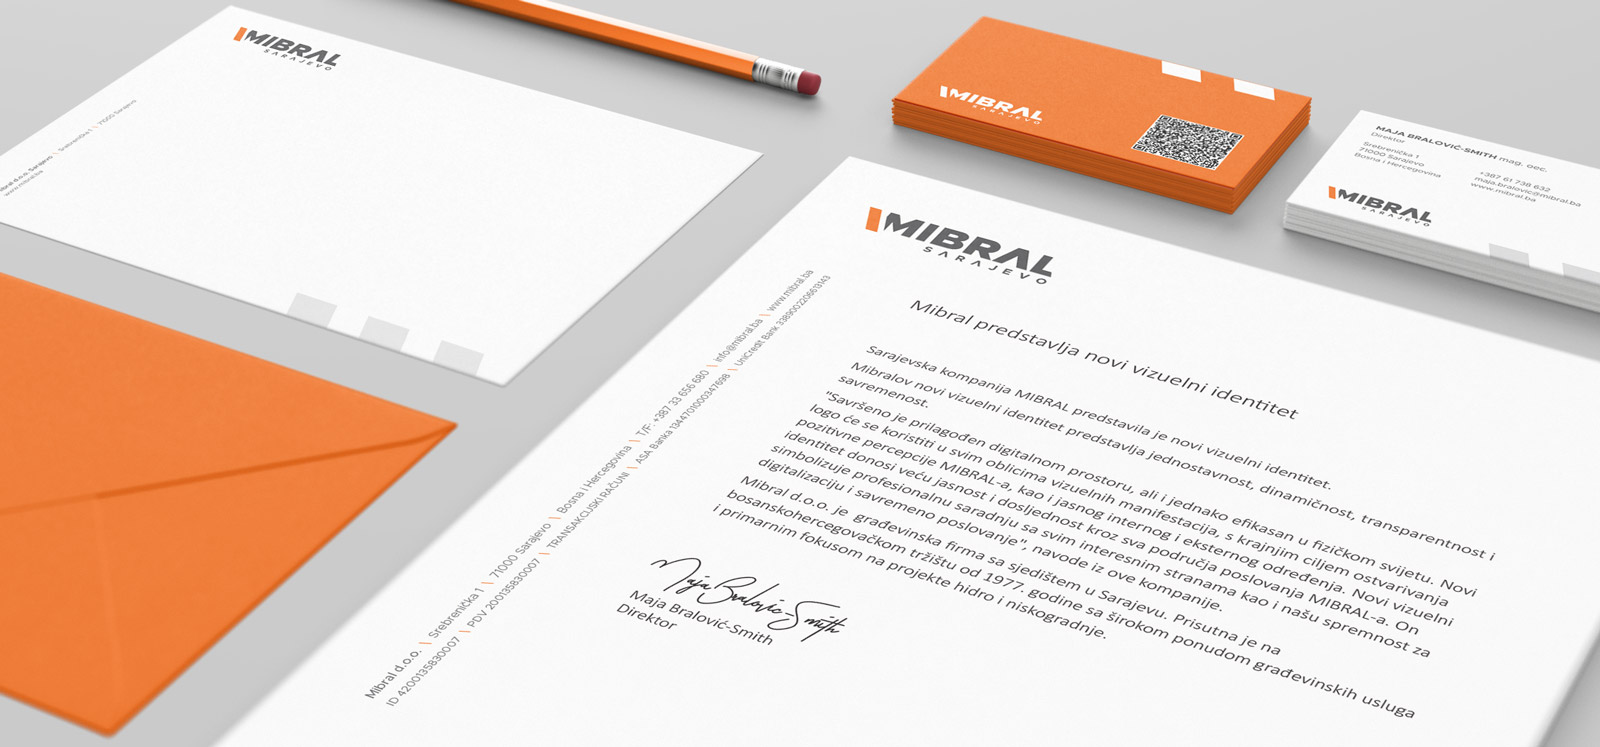 Mibral New Visual identity 2020